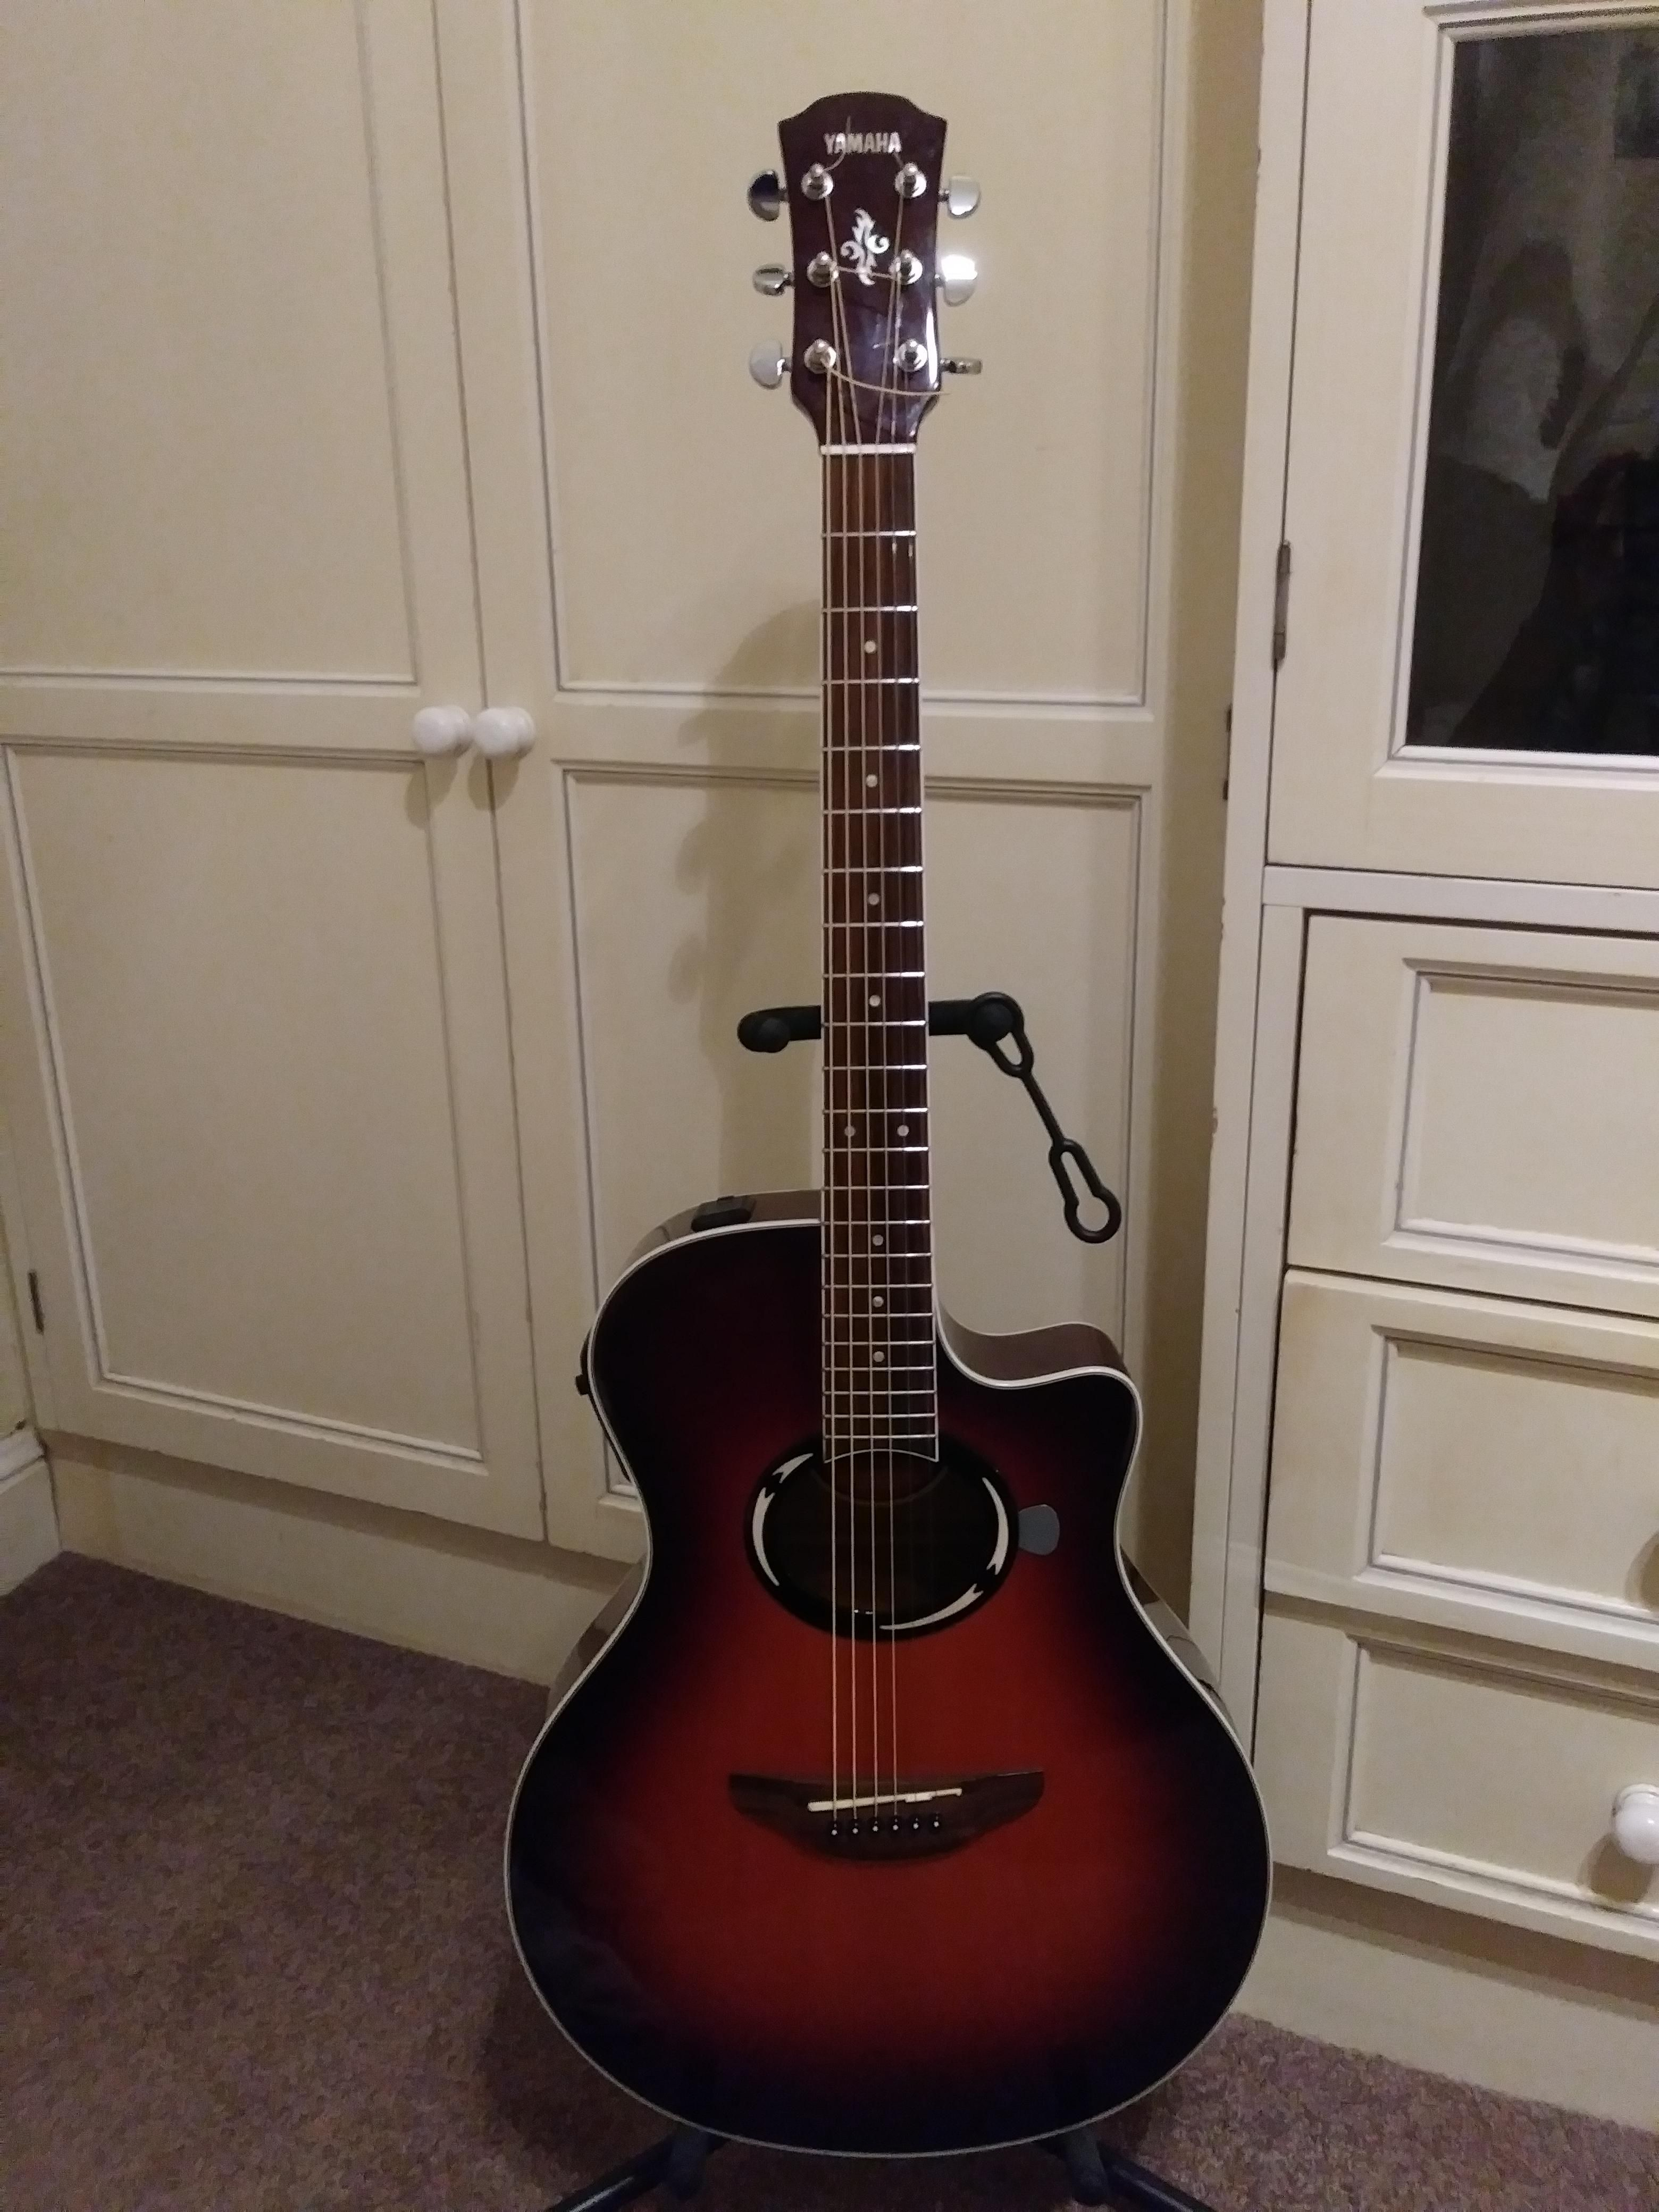 Yamaha Apx500 Ovs Cleaned And Restrung Happy To Have New Strings And A Clean Fretboard Guitar Cleaning Yamaha